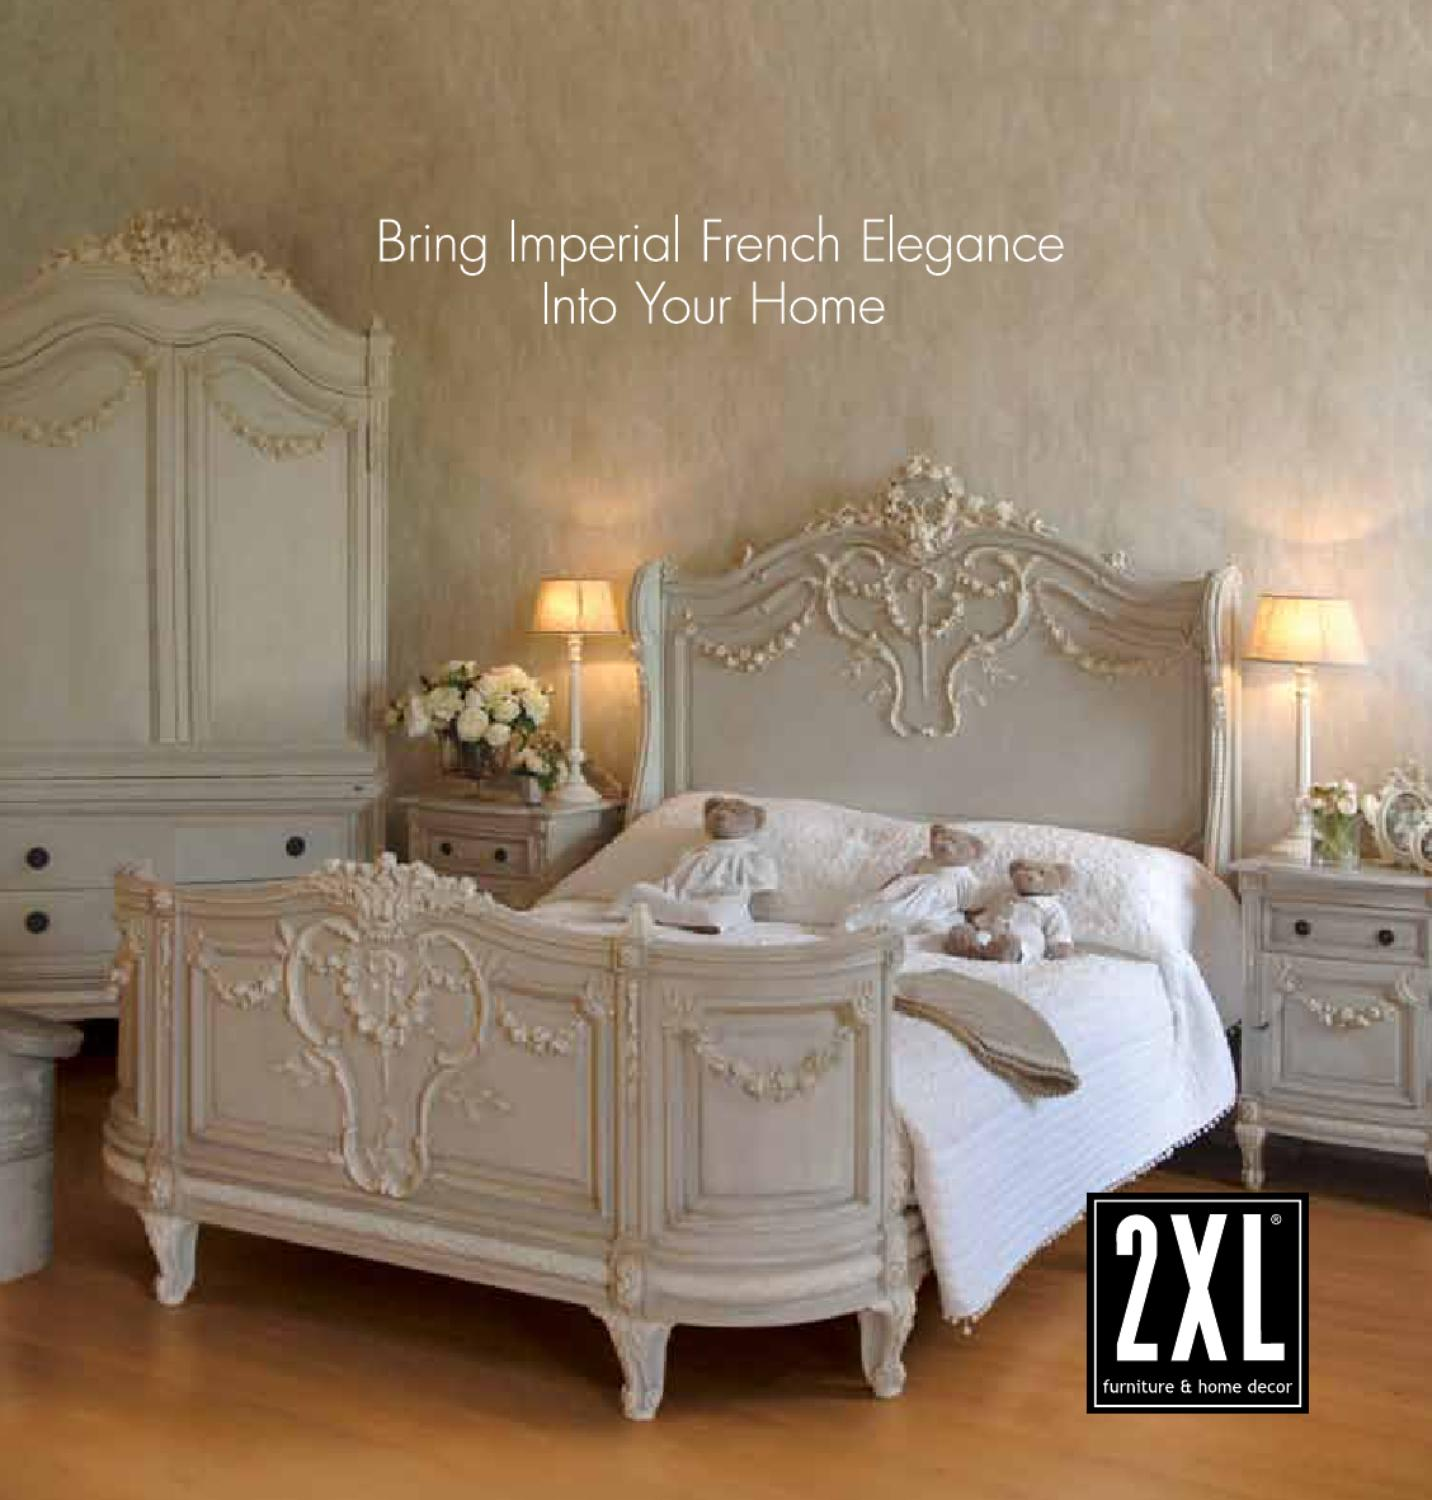 2xl furniture home decor by hot media issuu for Home decor uae